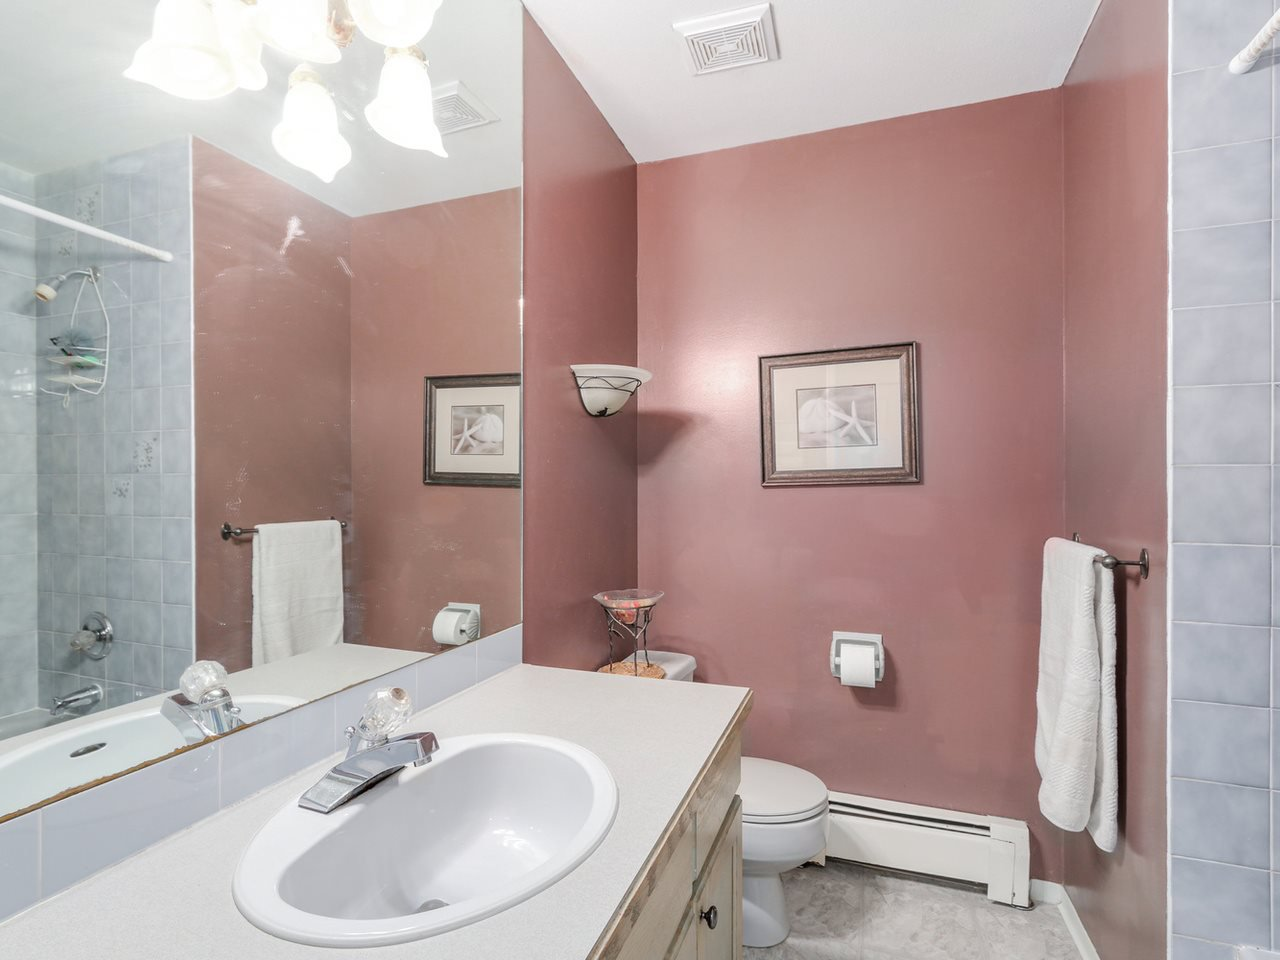 """Photo 18: Photos: 2559 BLUEBELL Avenue in Coquitlam: Summitt View House for sale in """"SUMMITT VIEW"""" : MLS®# R2064204"""